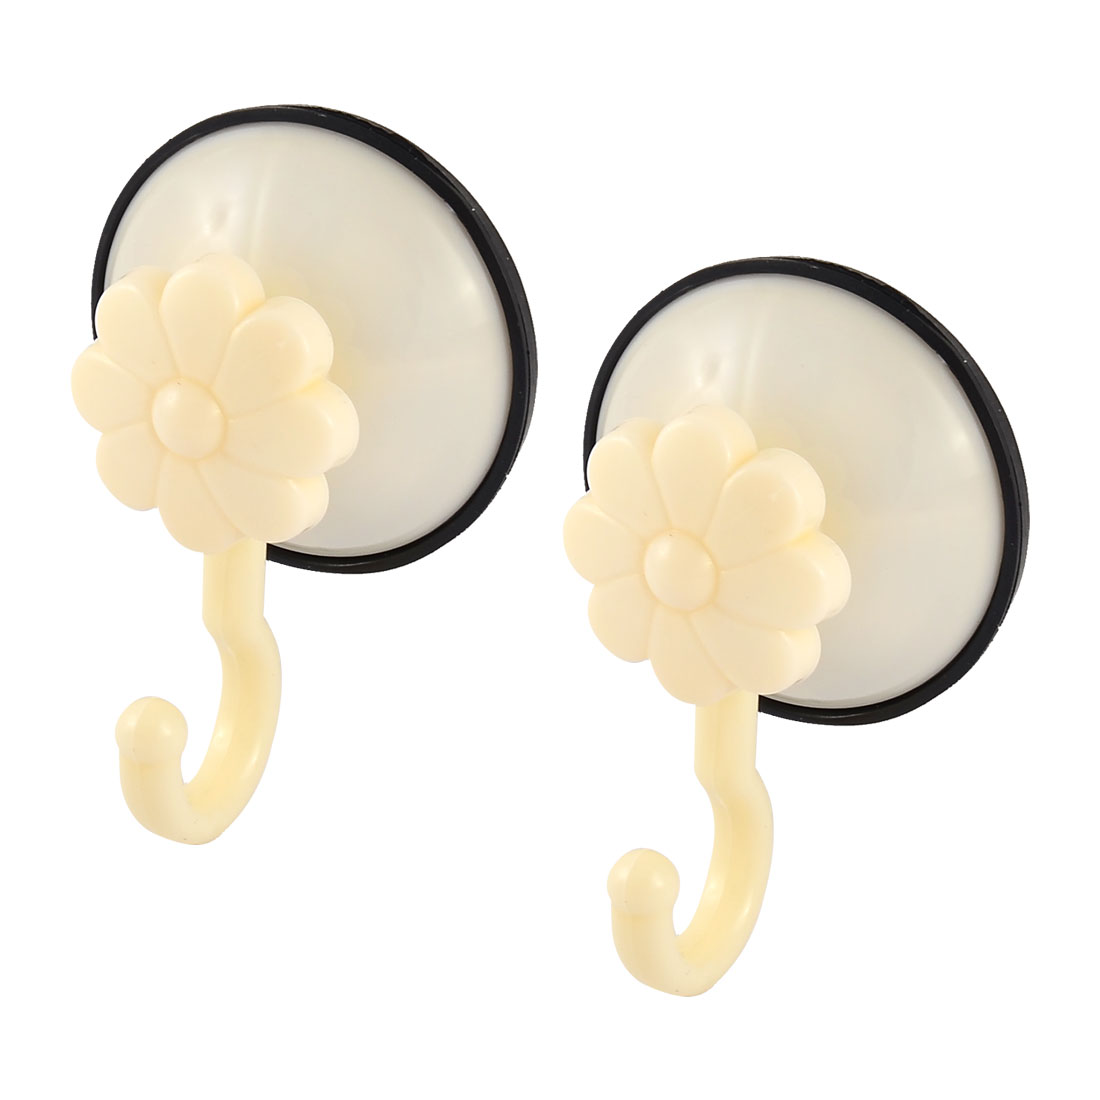 Plastic Bathroom Glass Door Suction Cup Hook Wall Hanger Beige 2 Pcs